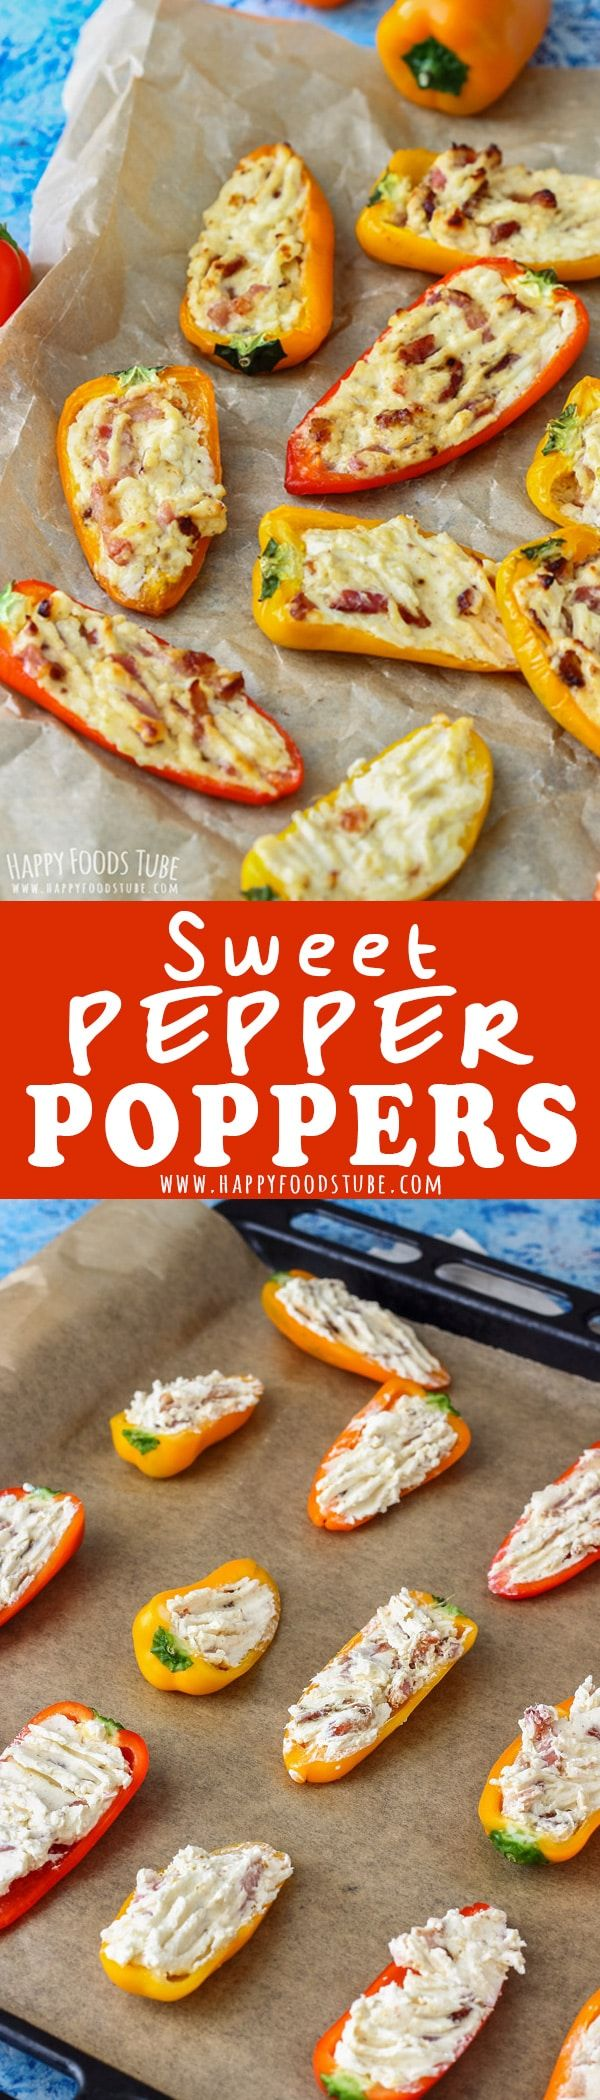 These Sweet Pepper Poppers are the perfect appetizers for parties and family gatherings. Ready in 30 minutes this oven baked party food is easy to make and tastes amazing.